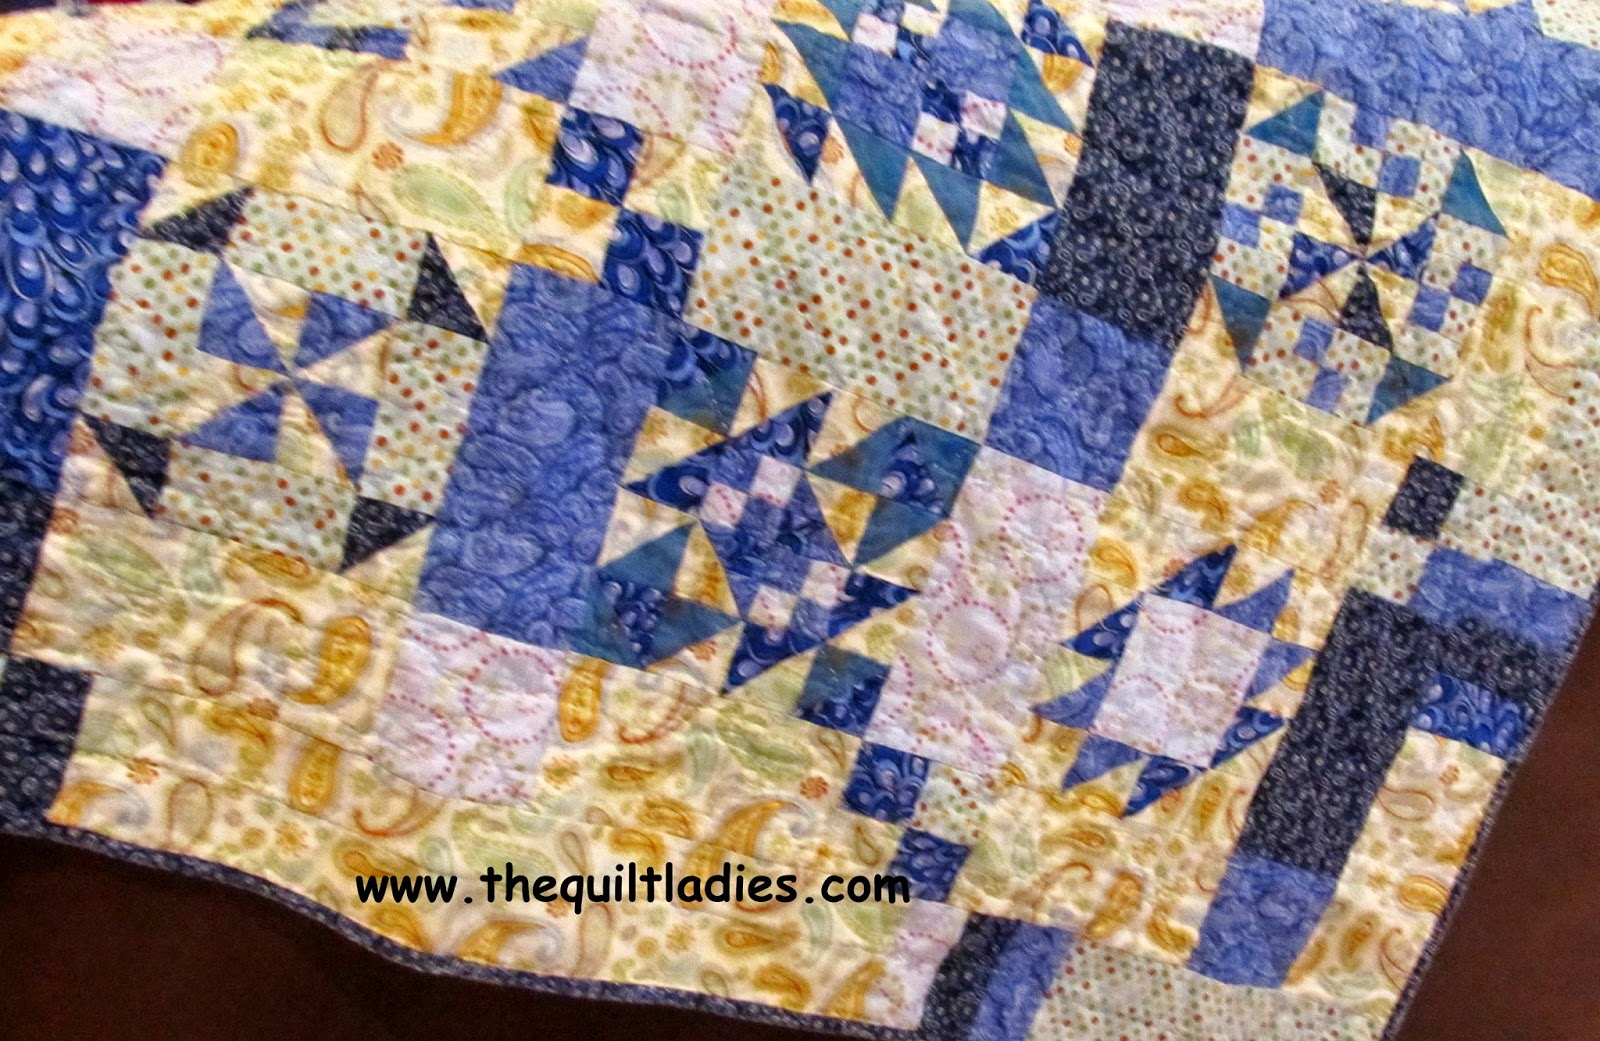 http://www.shop.thequiltladies.com/product.sc?productId=70&categoryId=37